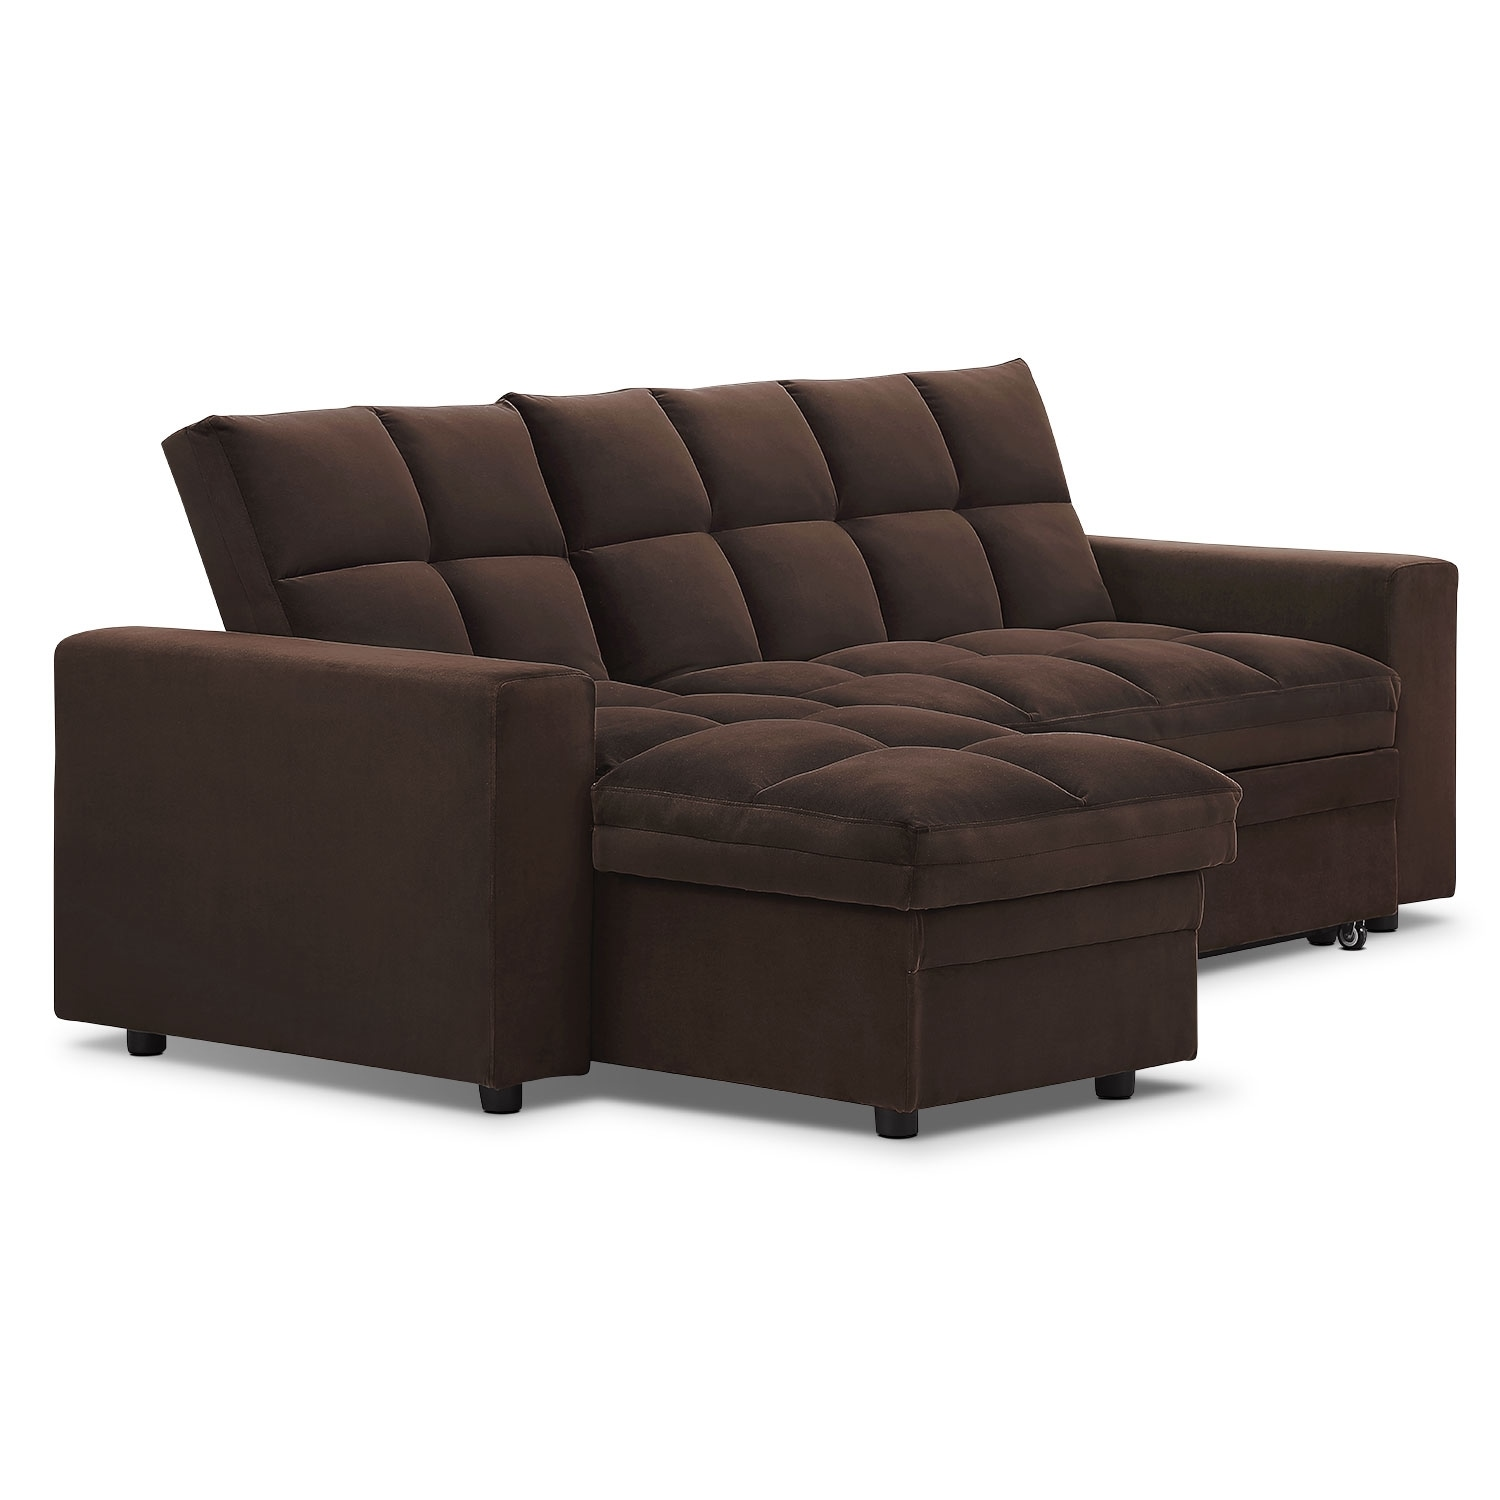 Living Room Furniture - Metro 2 Pc. Chaise Sofa Bed w/ Storage